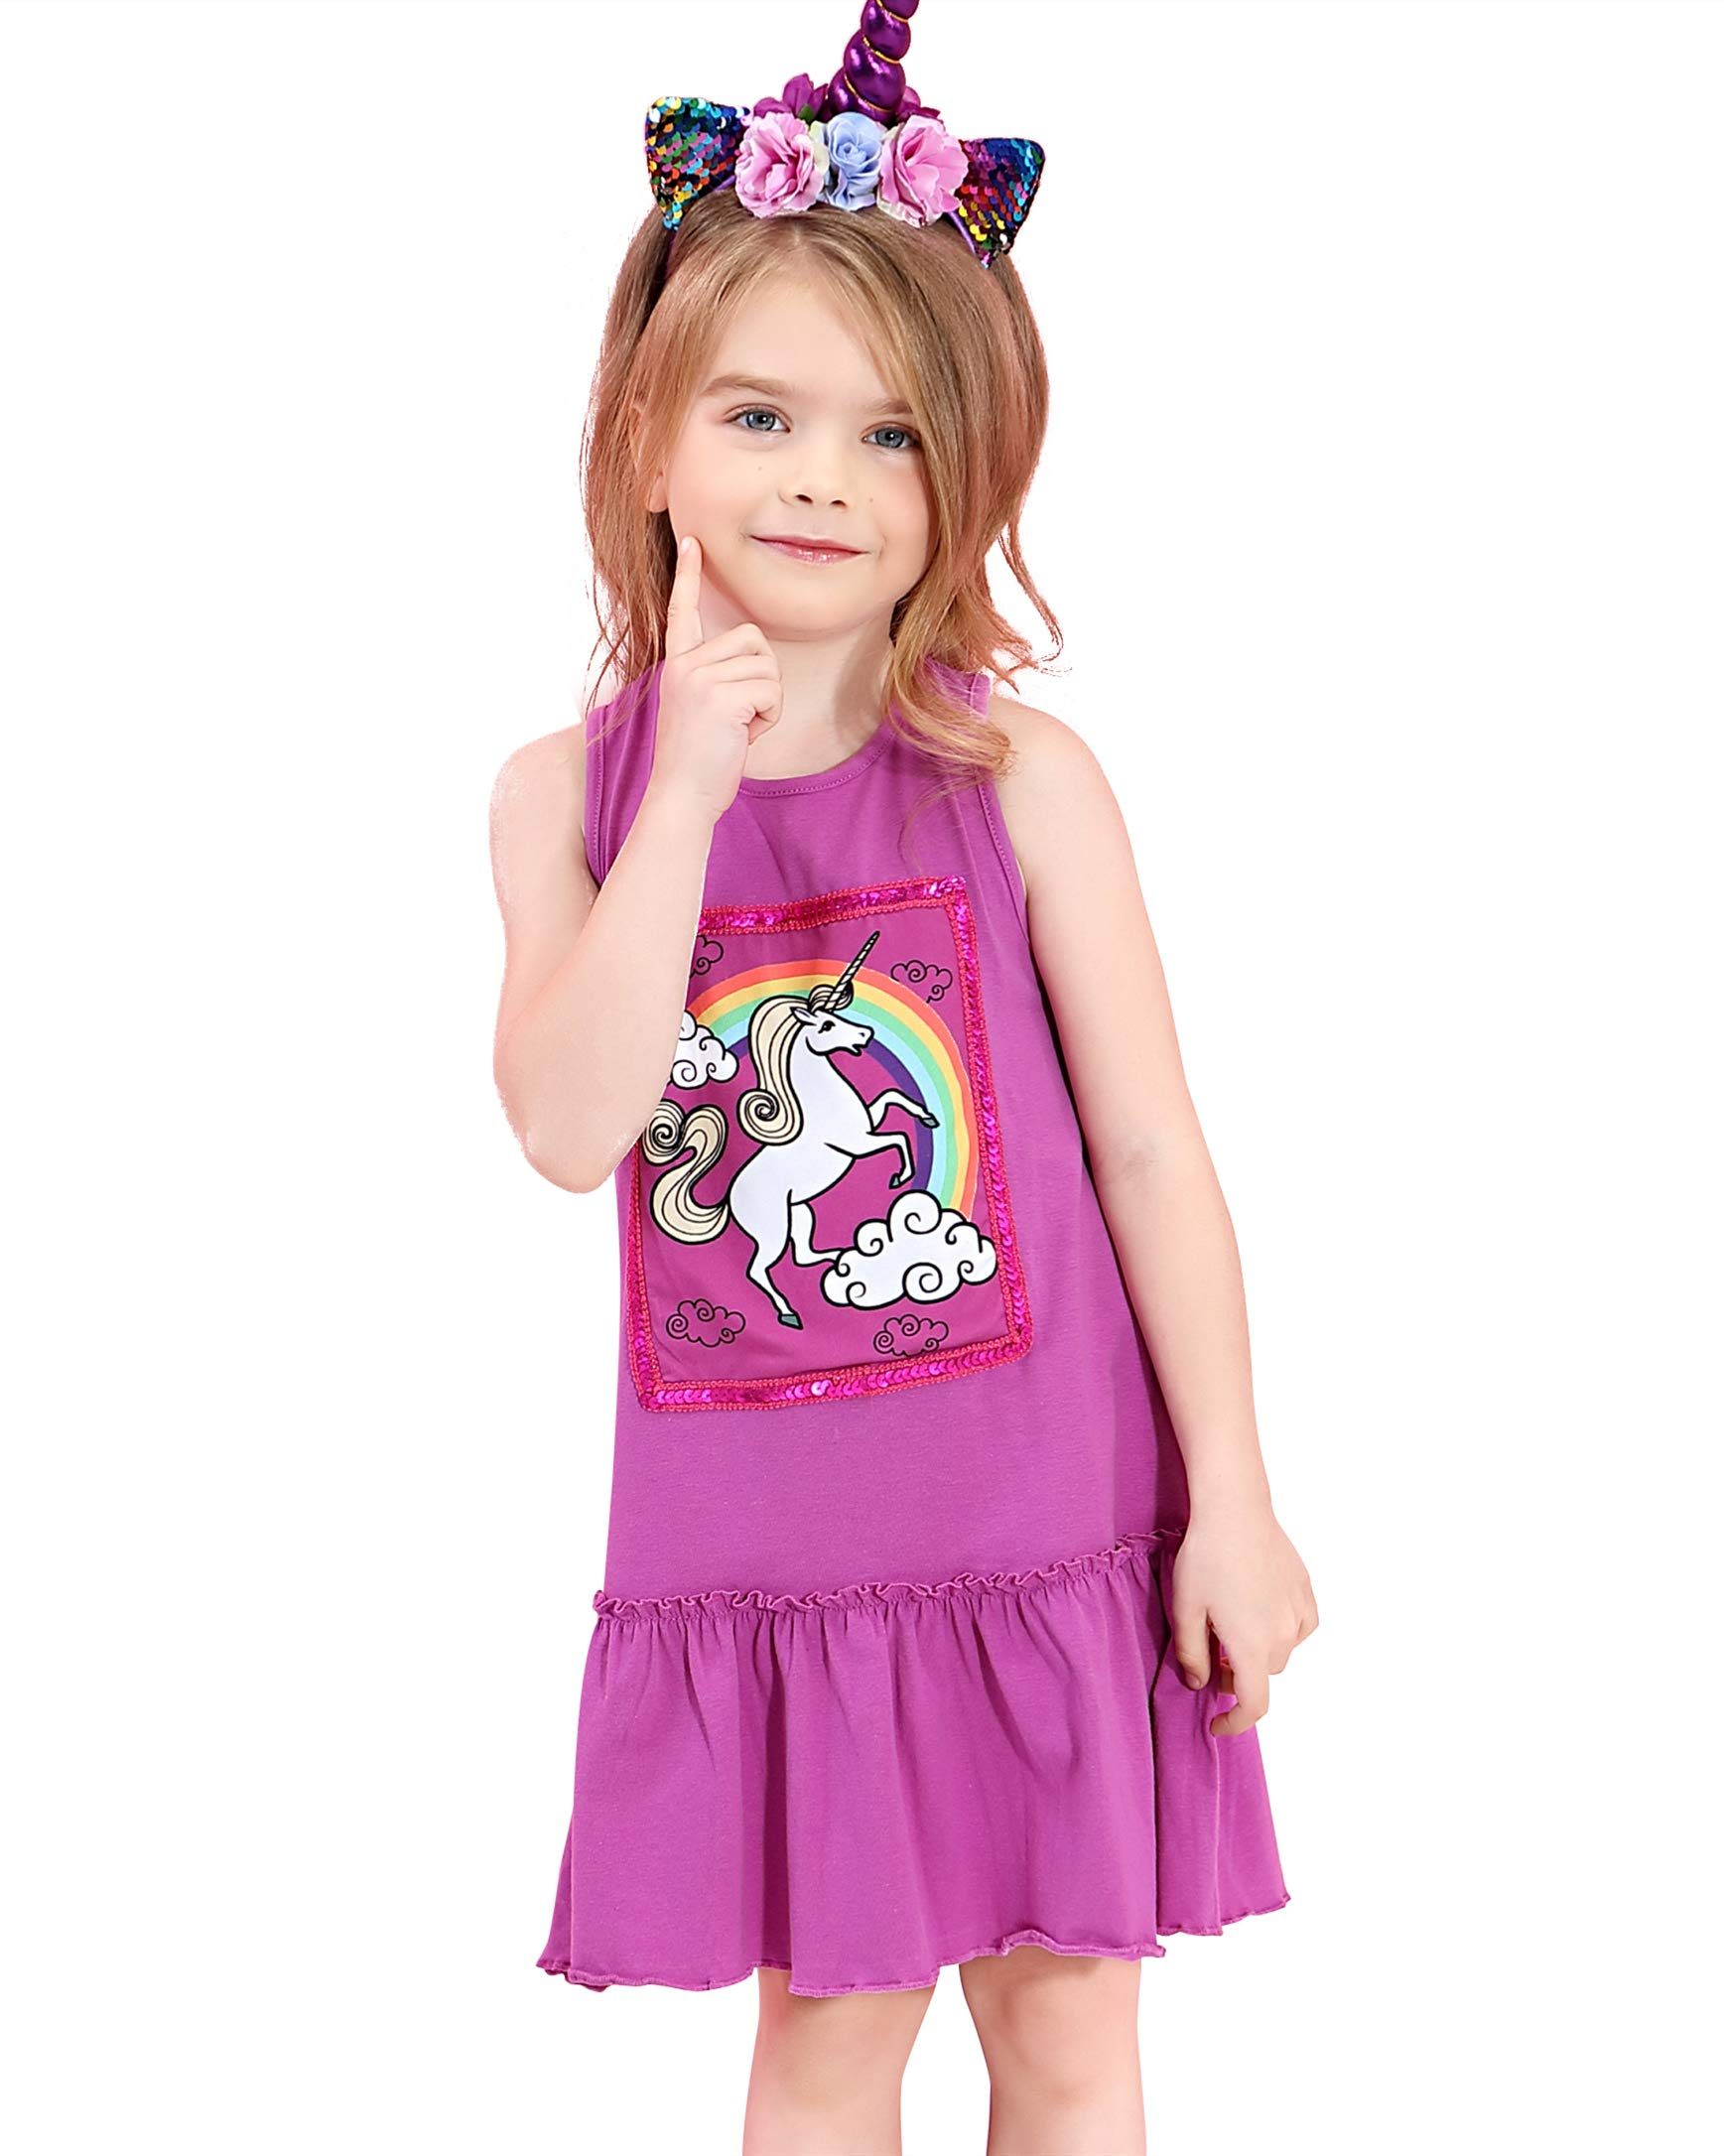 Liliane Girls Unicorn Dress 2t Toddler Girls Dresses 4t for Toddle A178-23Y